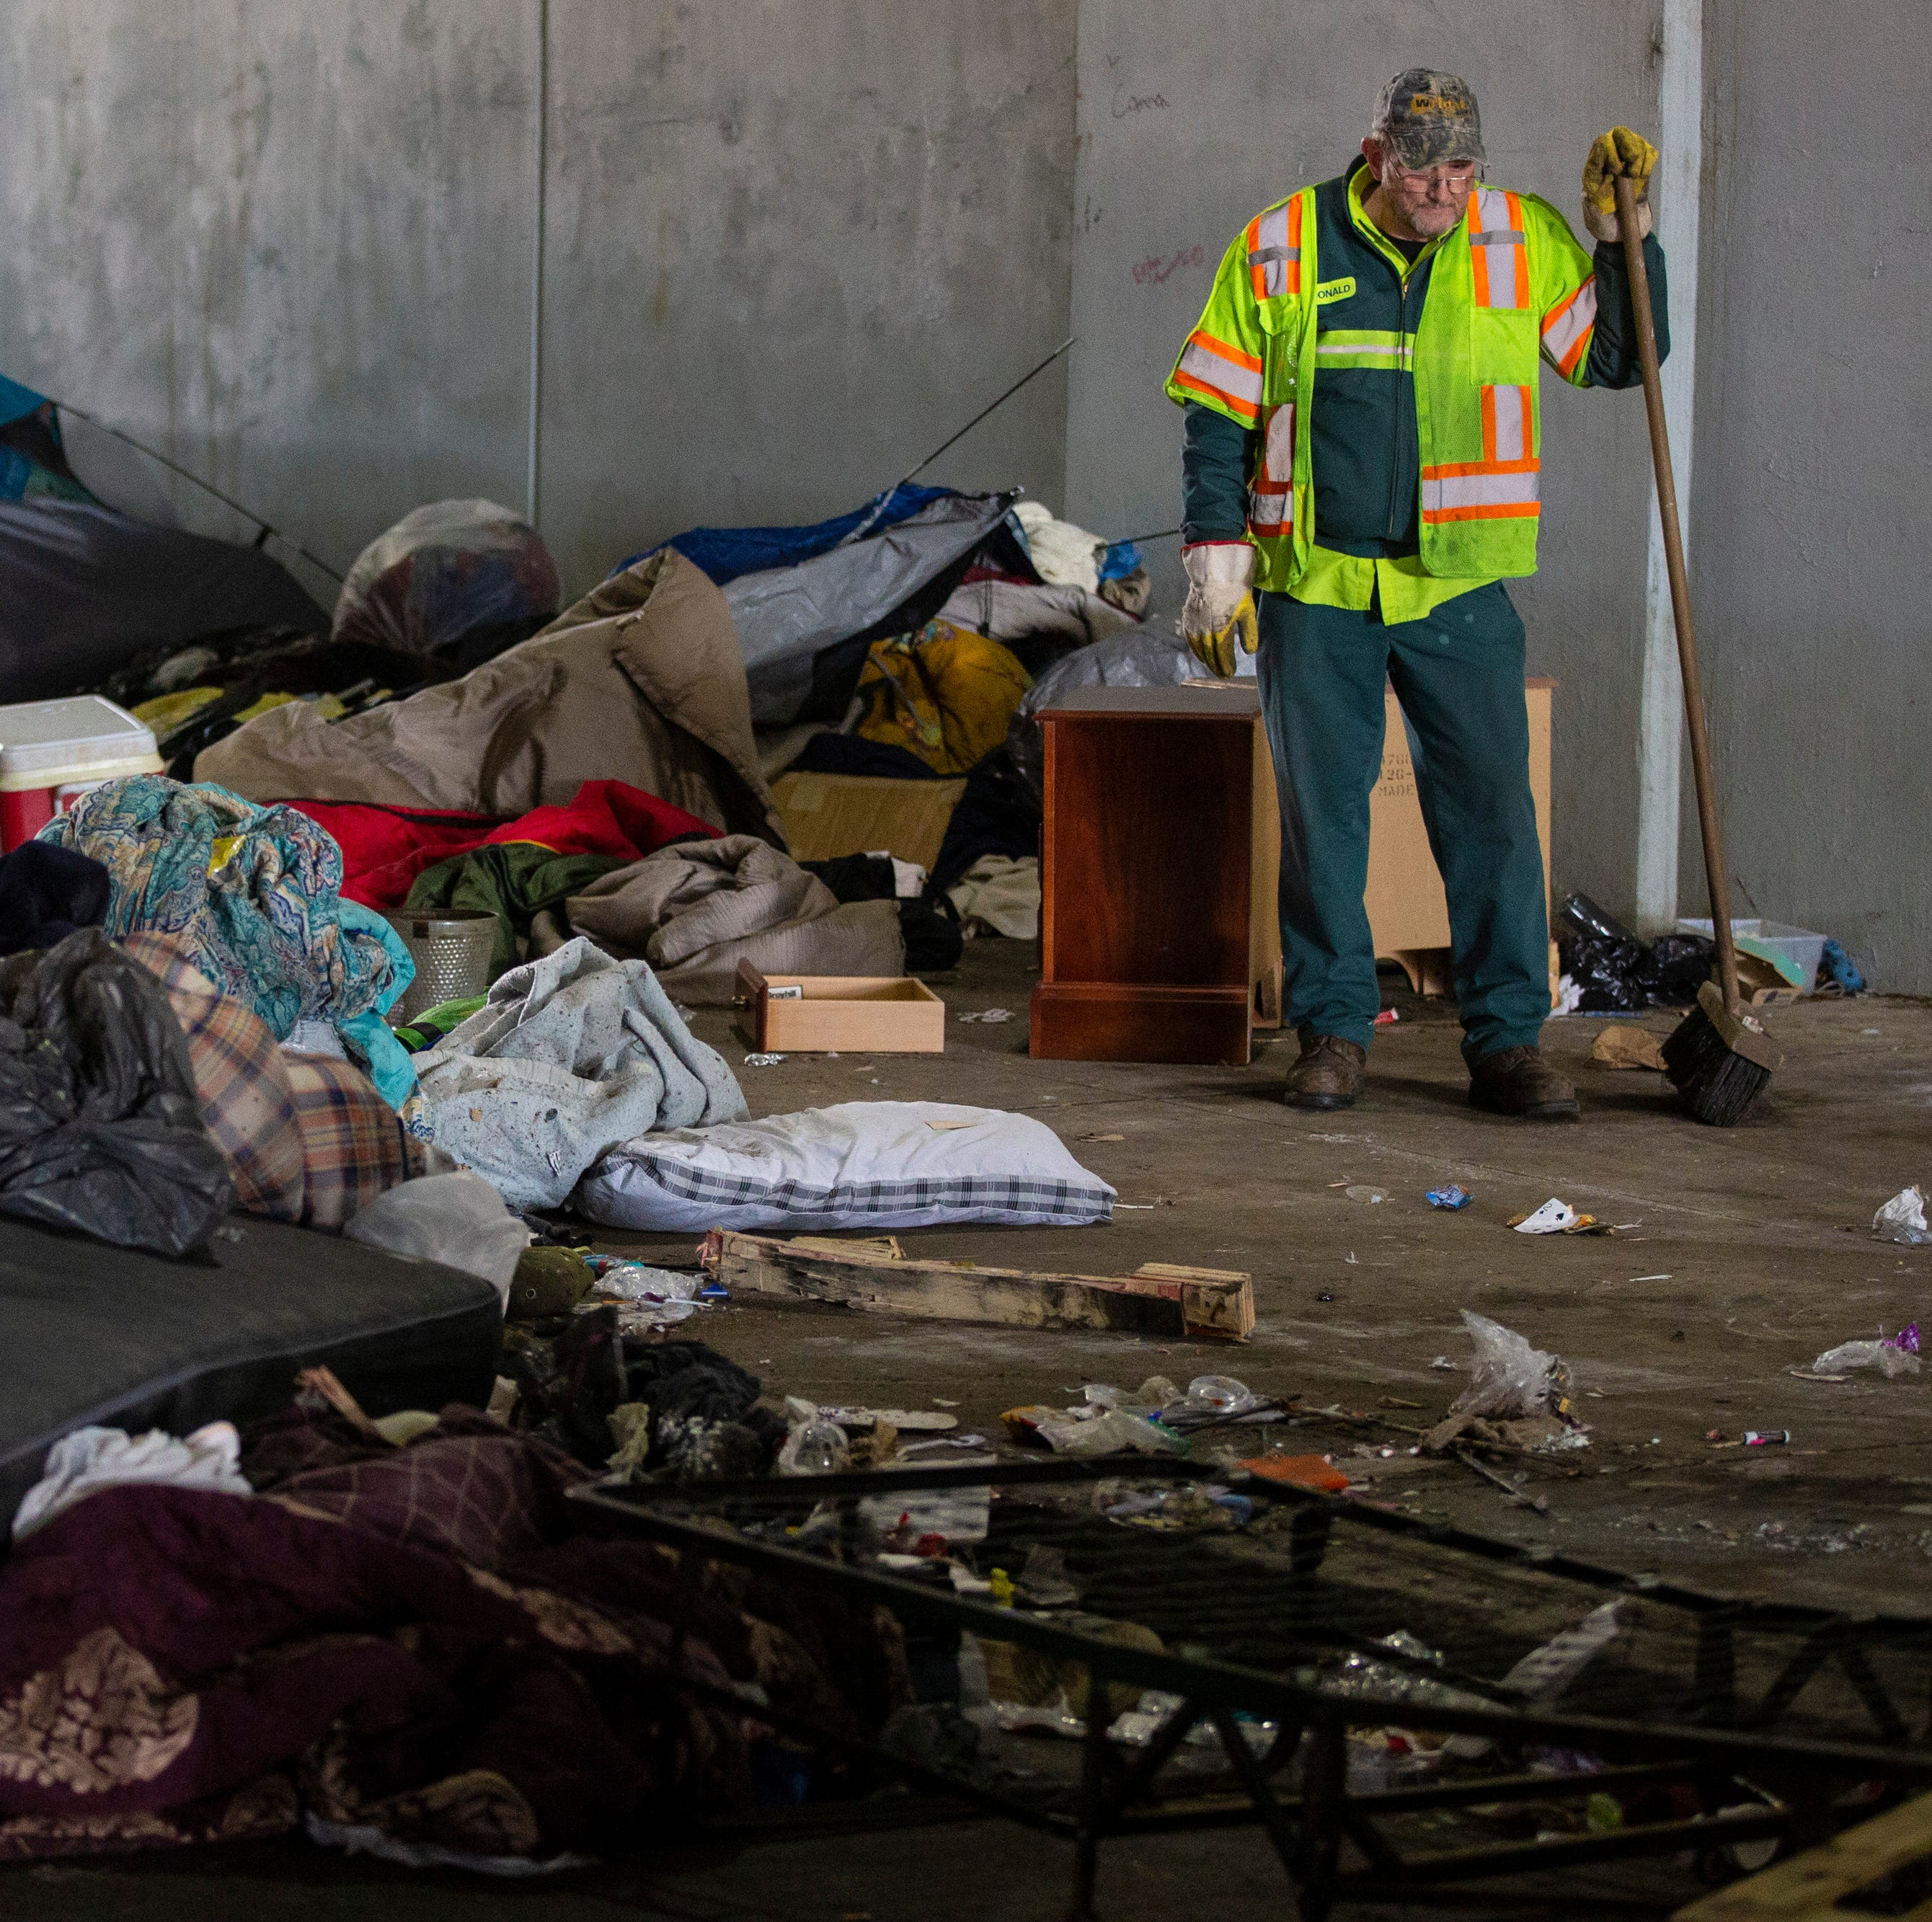 Louisville shoves homeless into the shadows but offers no real solution